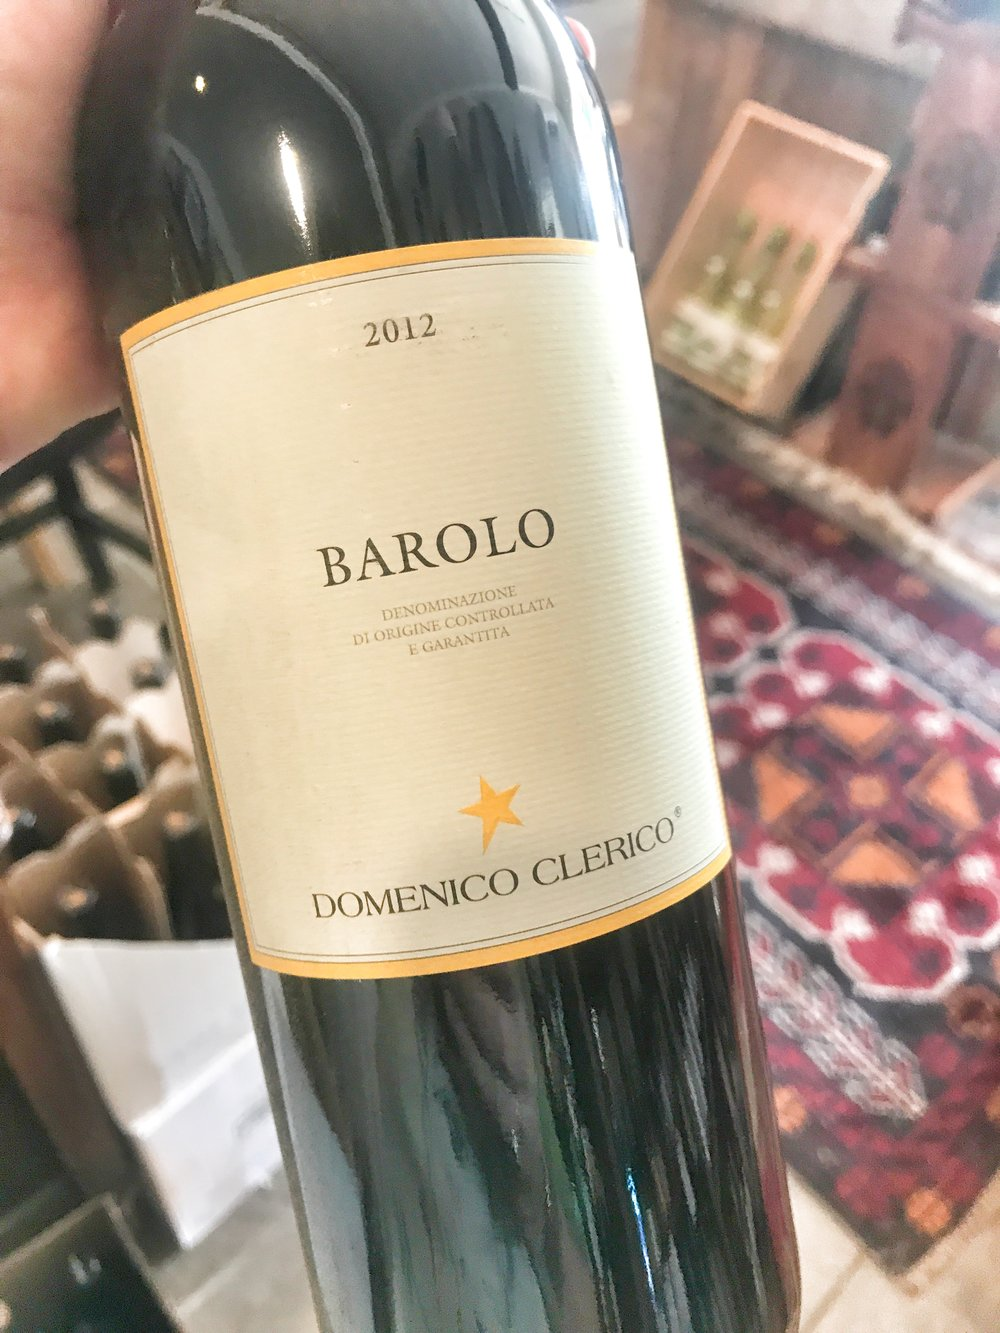 The fact that Domenico Clerico has re-introduced its base Barolo is great news. The 2012 Barolo is a beautifully rich and generous wine that pulls out the best of the Nebbiolo grape (sourced mostly from the Ginestra vineyard) and the opulent style of winemaking that defines Domenico Clerico. There is a good amount of oak present, but the way it is integrated is always a source of stylistic inspiration. Dark fruit and blackberry preserves segue to cinnamon, sweet smoke and grilled herb. - The Wine Advocate 93 pts. 58.99